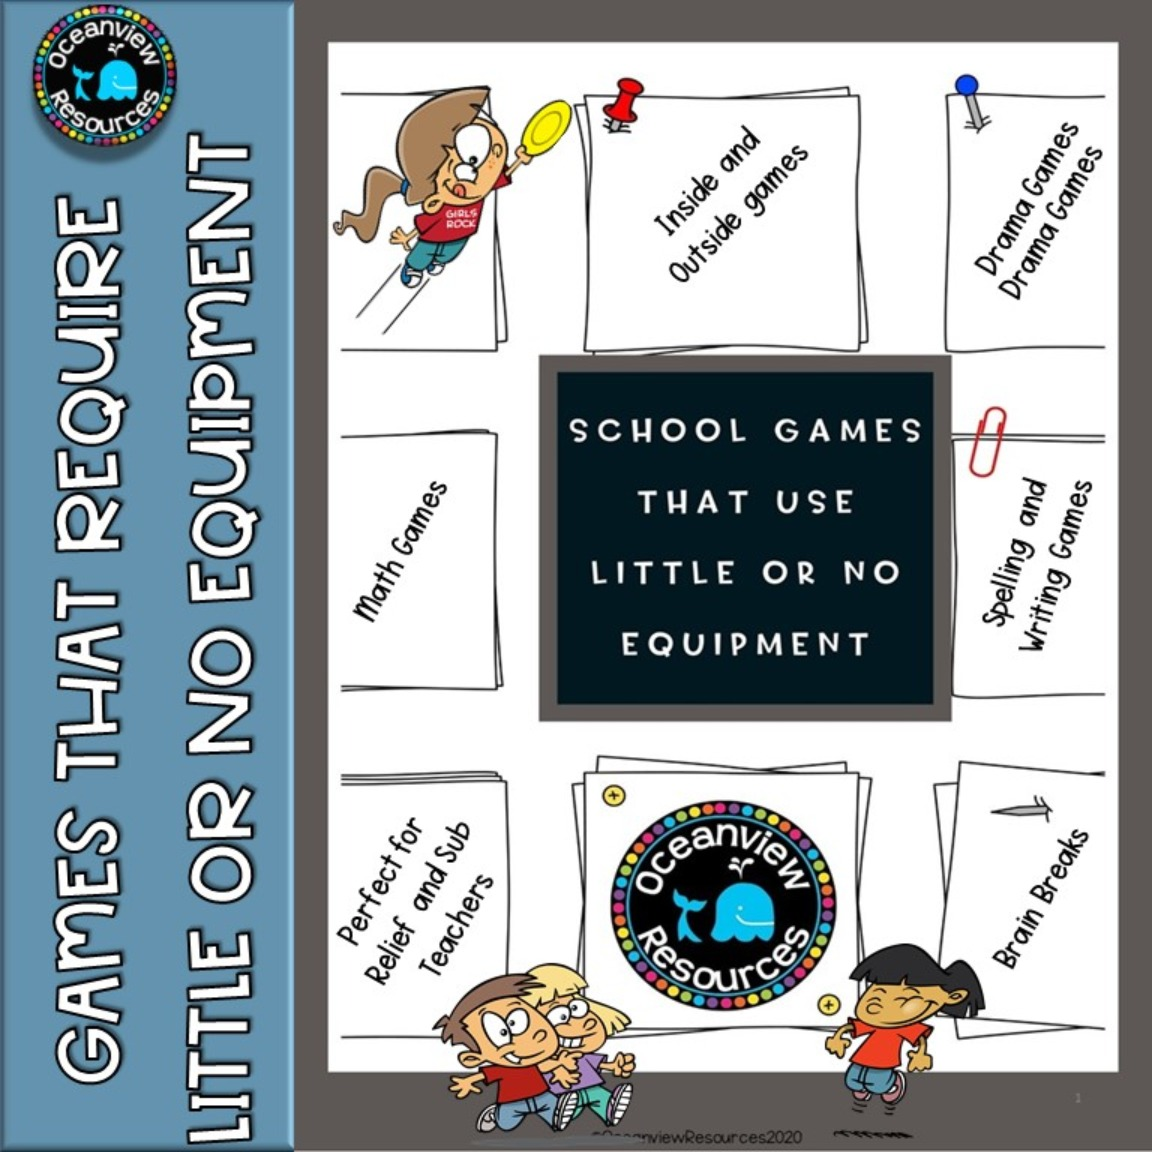 Fun games that need little or no equipment - Ideal for Relief and Sub teachers.